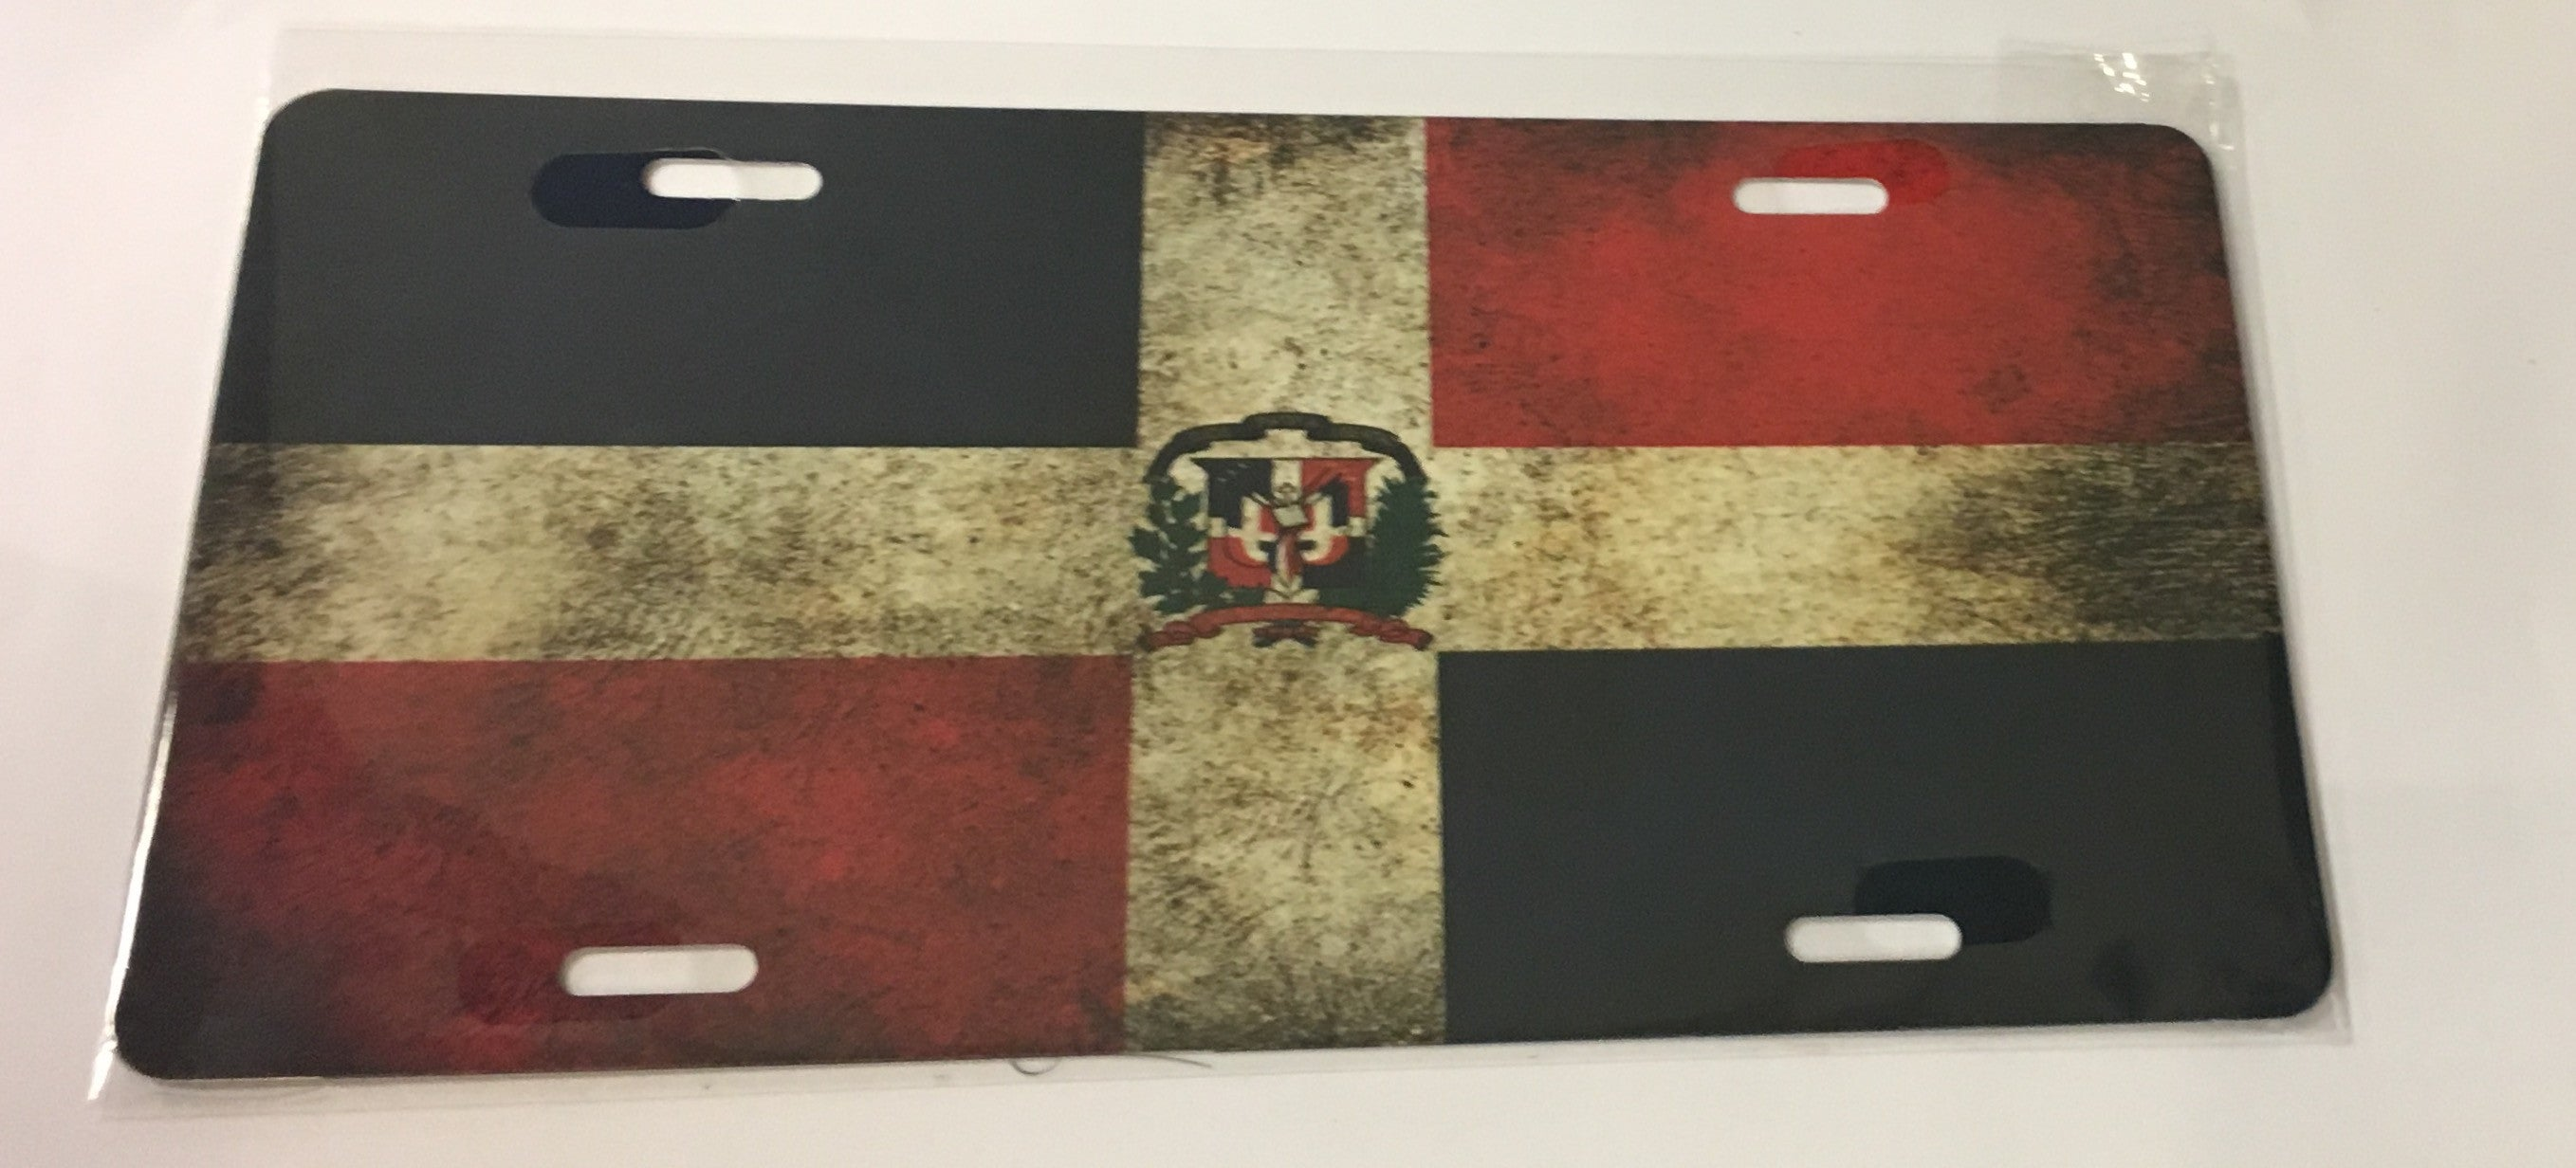 Dominican Republic Grunge Flag License Plate